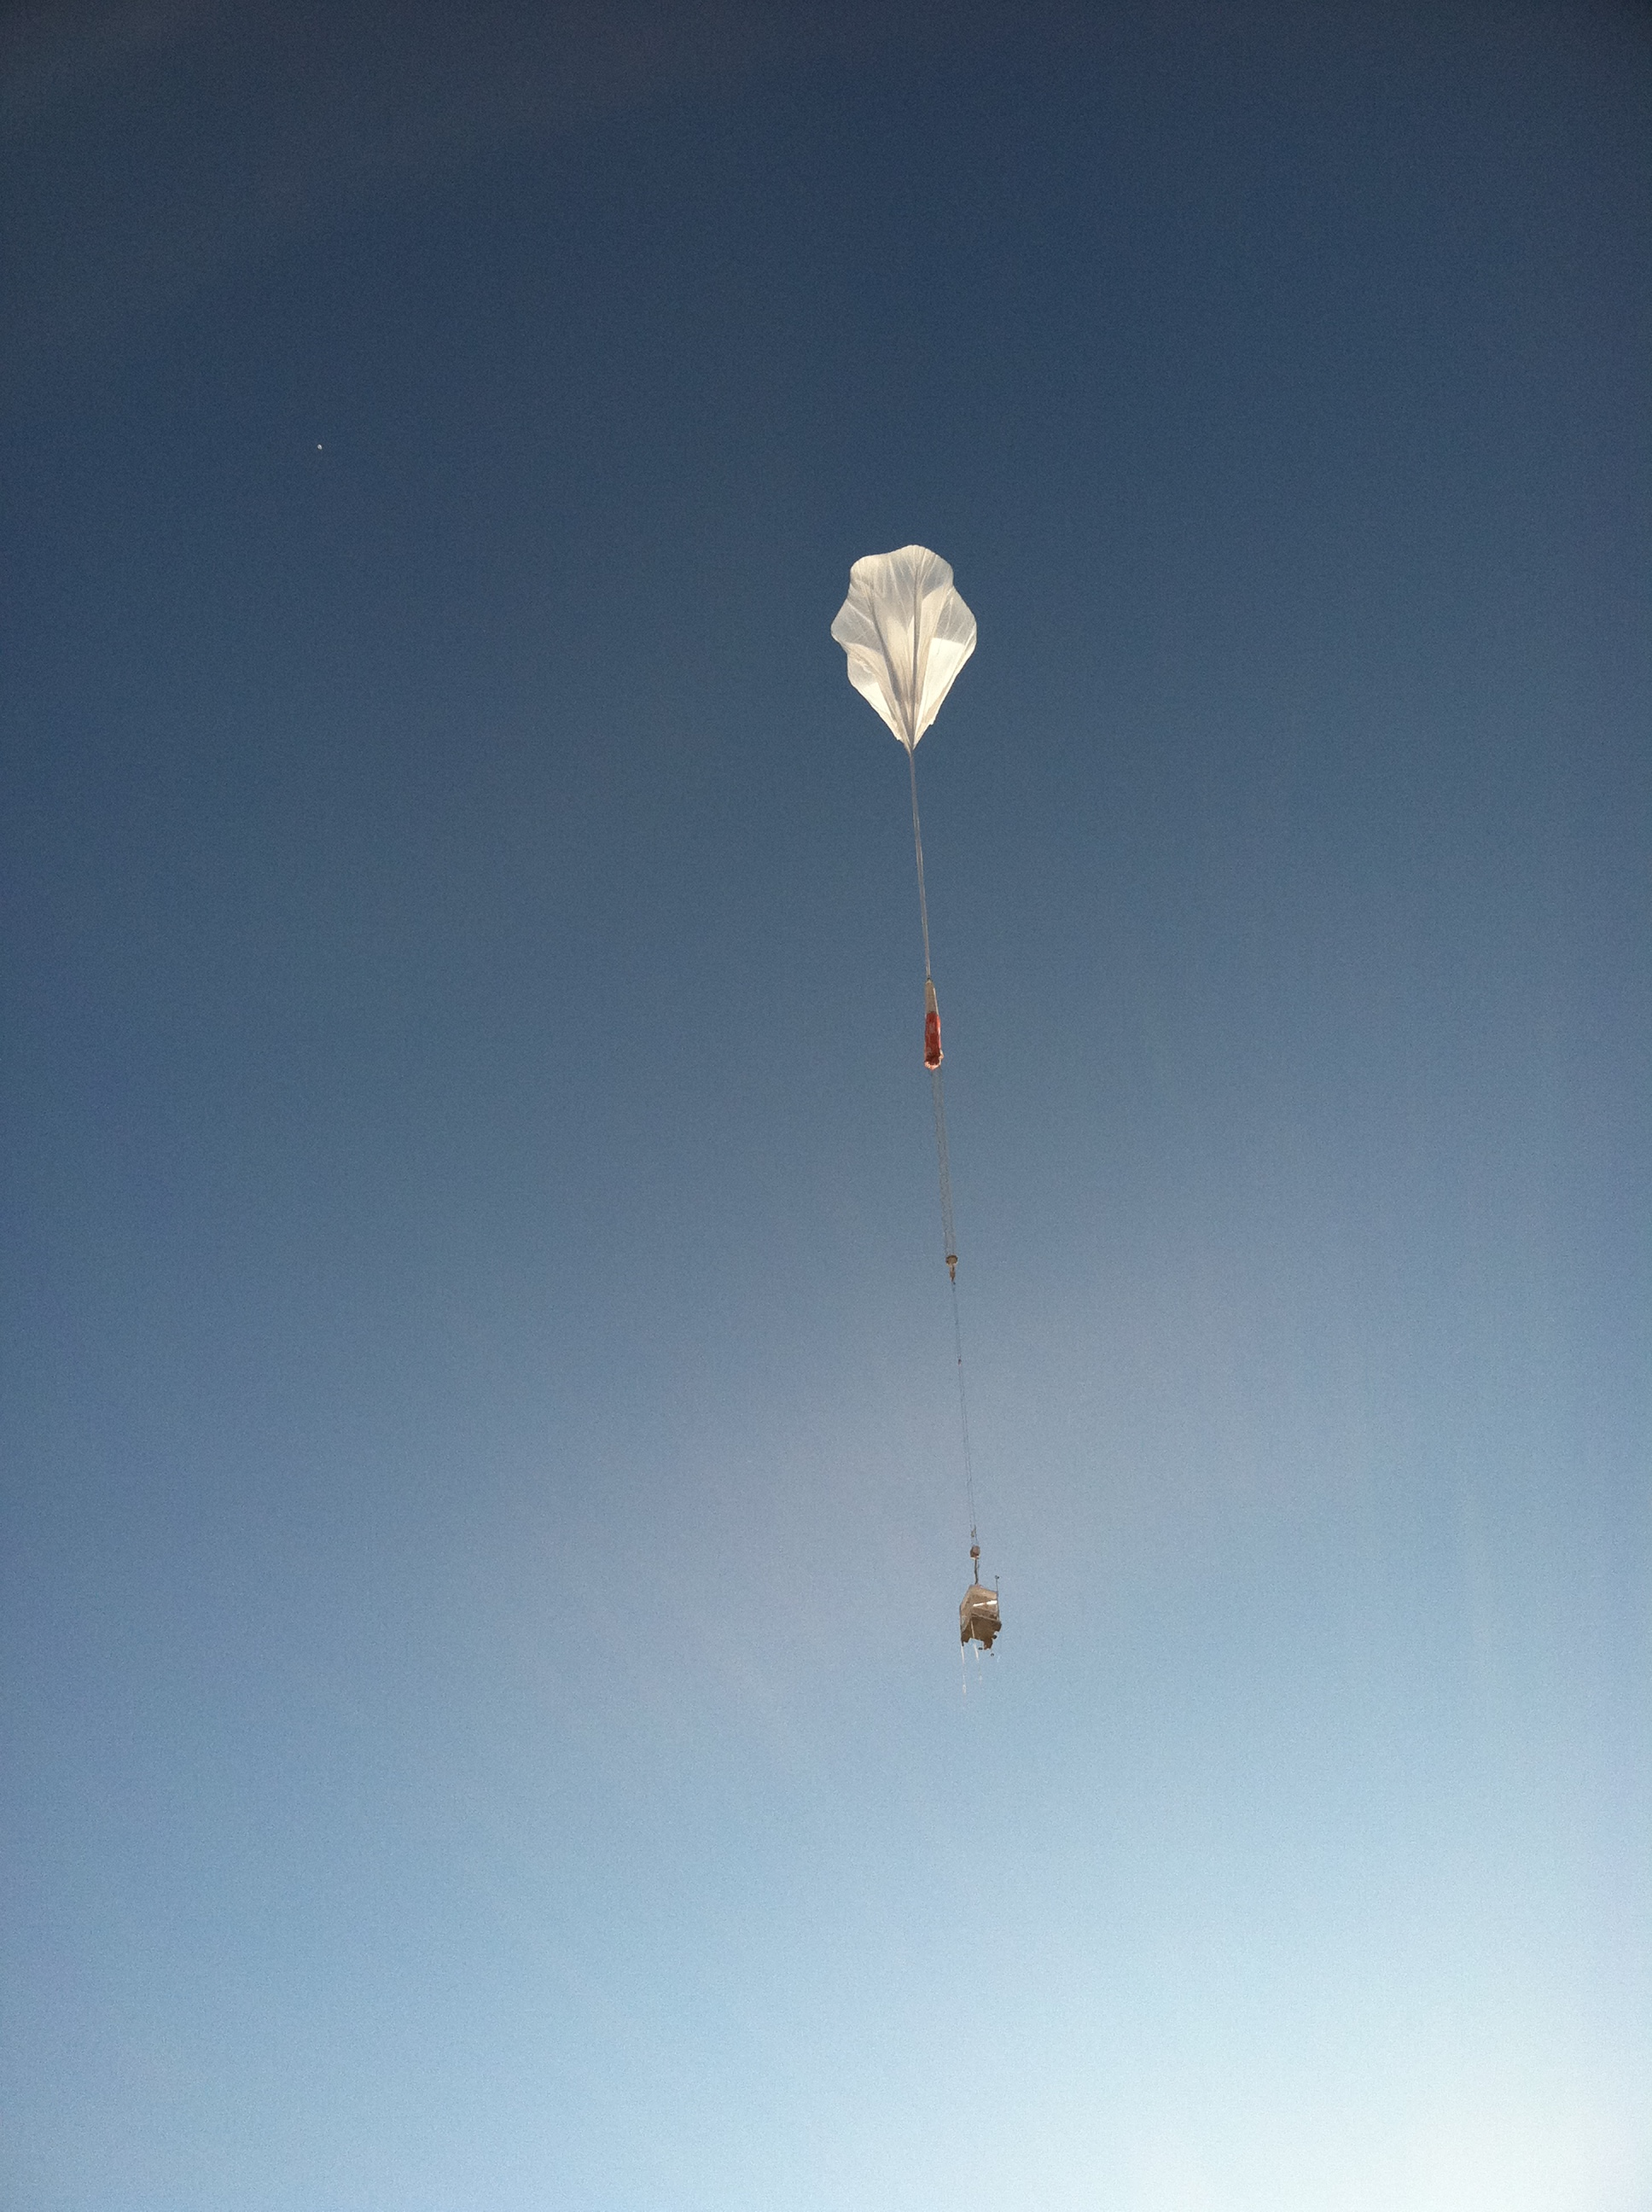 Balloon Launch from NM